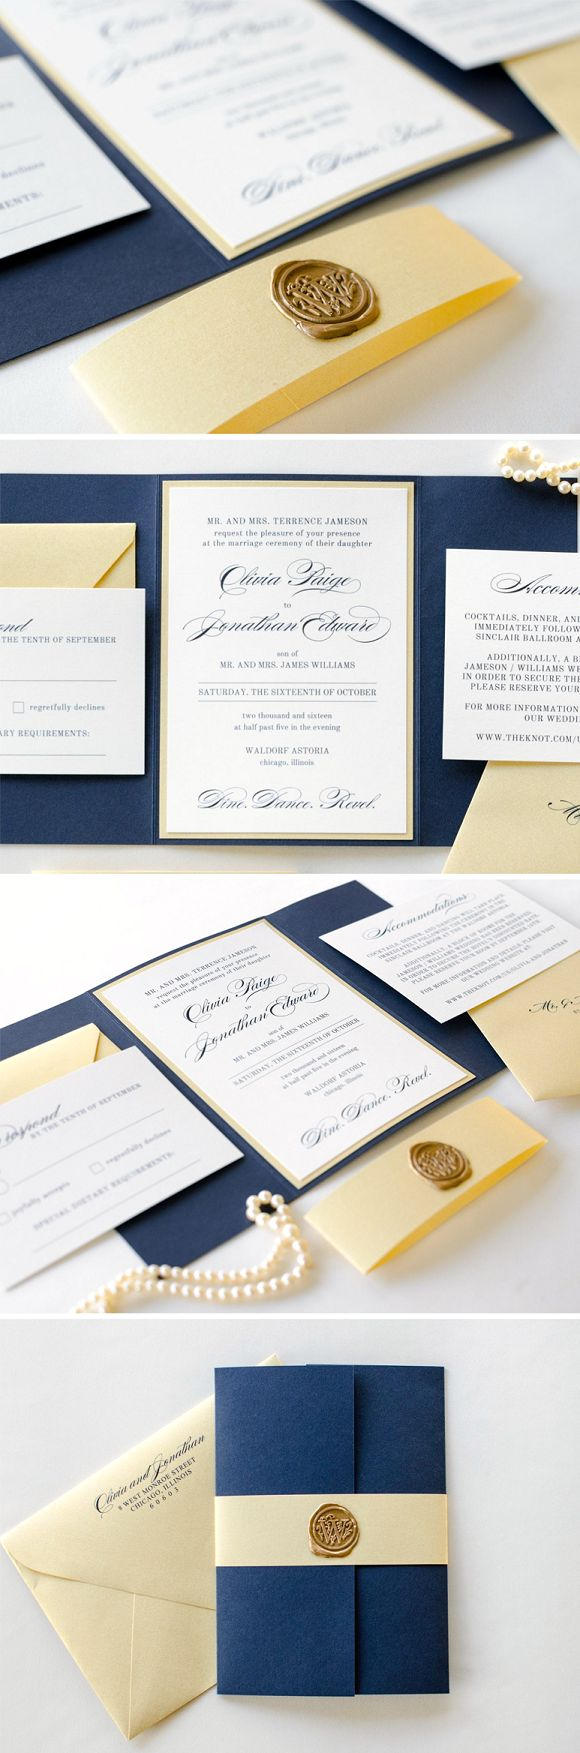 Navy Blue, Gold Shimmer, & Ivory Wedding Invitation Suite with Gold Wax Seal